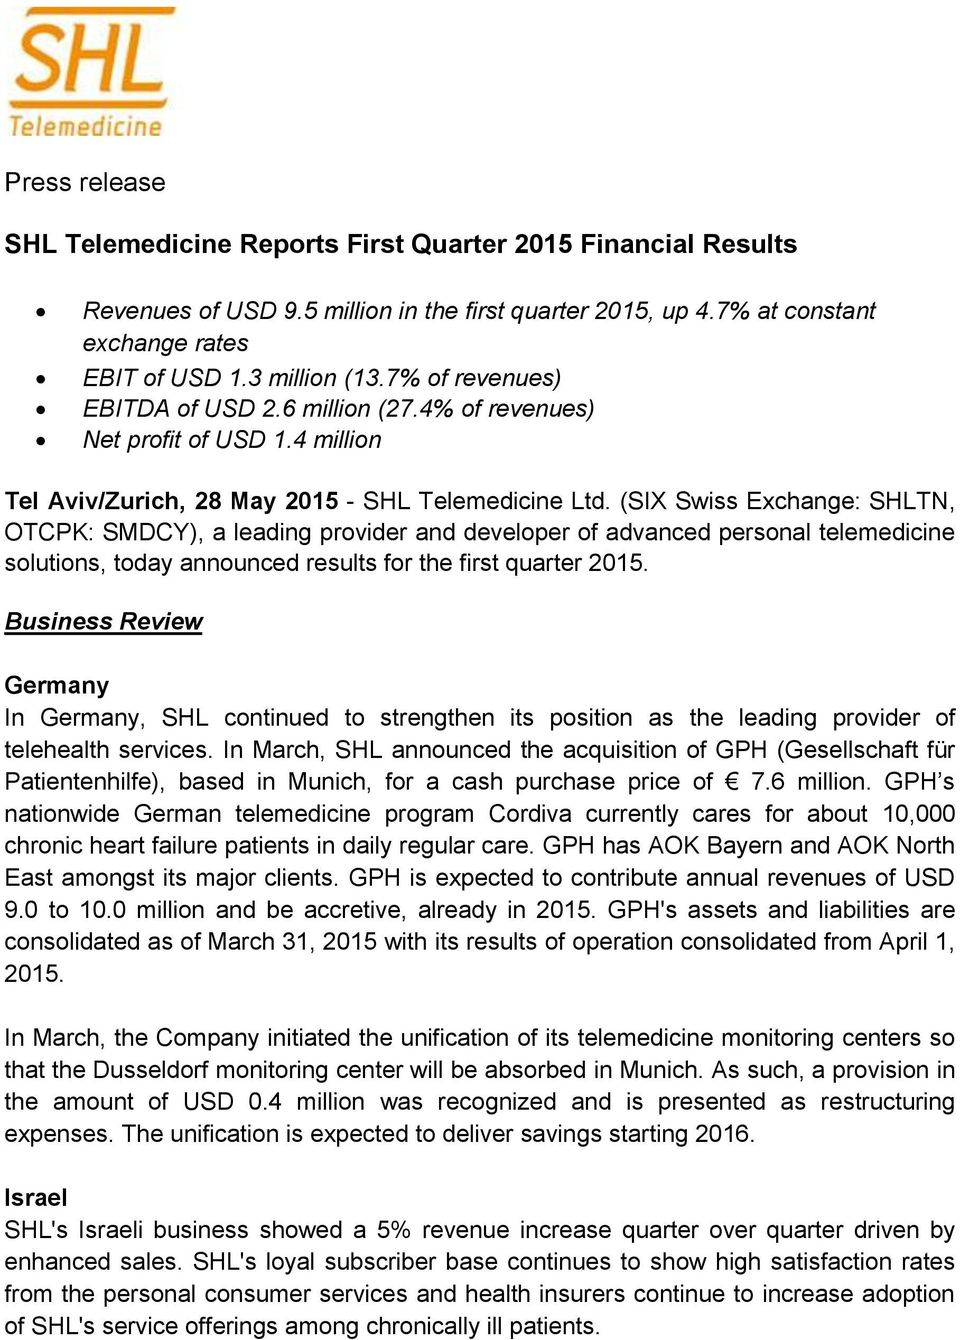 (SIX Swiss Exchange: SHLTN, OTCPK: SMDCY), a leading provider and developer of advanced personal telemedicine solutions, today announced results for the first quarter 2015.